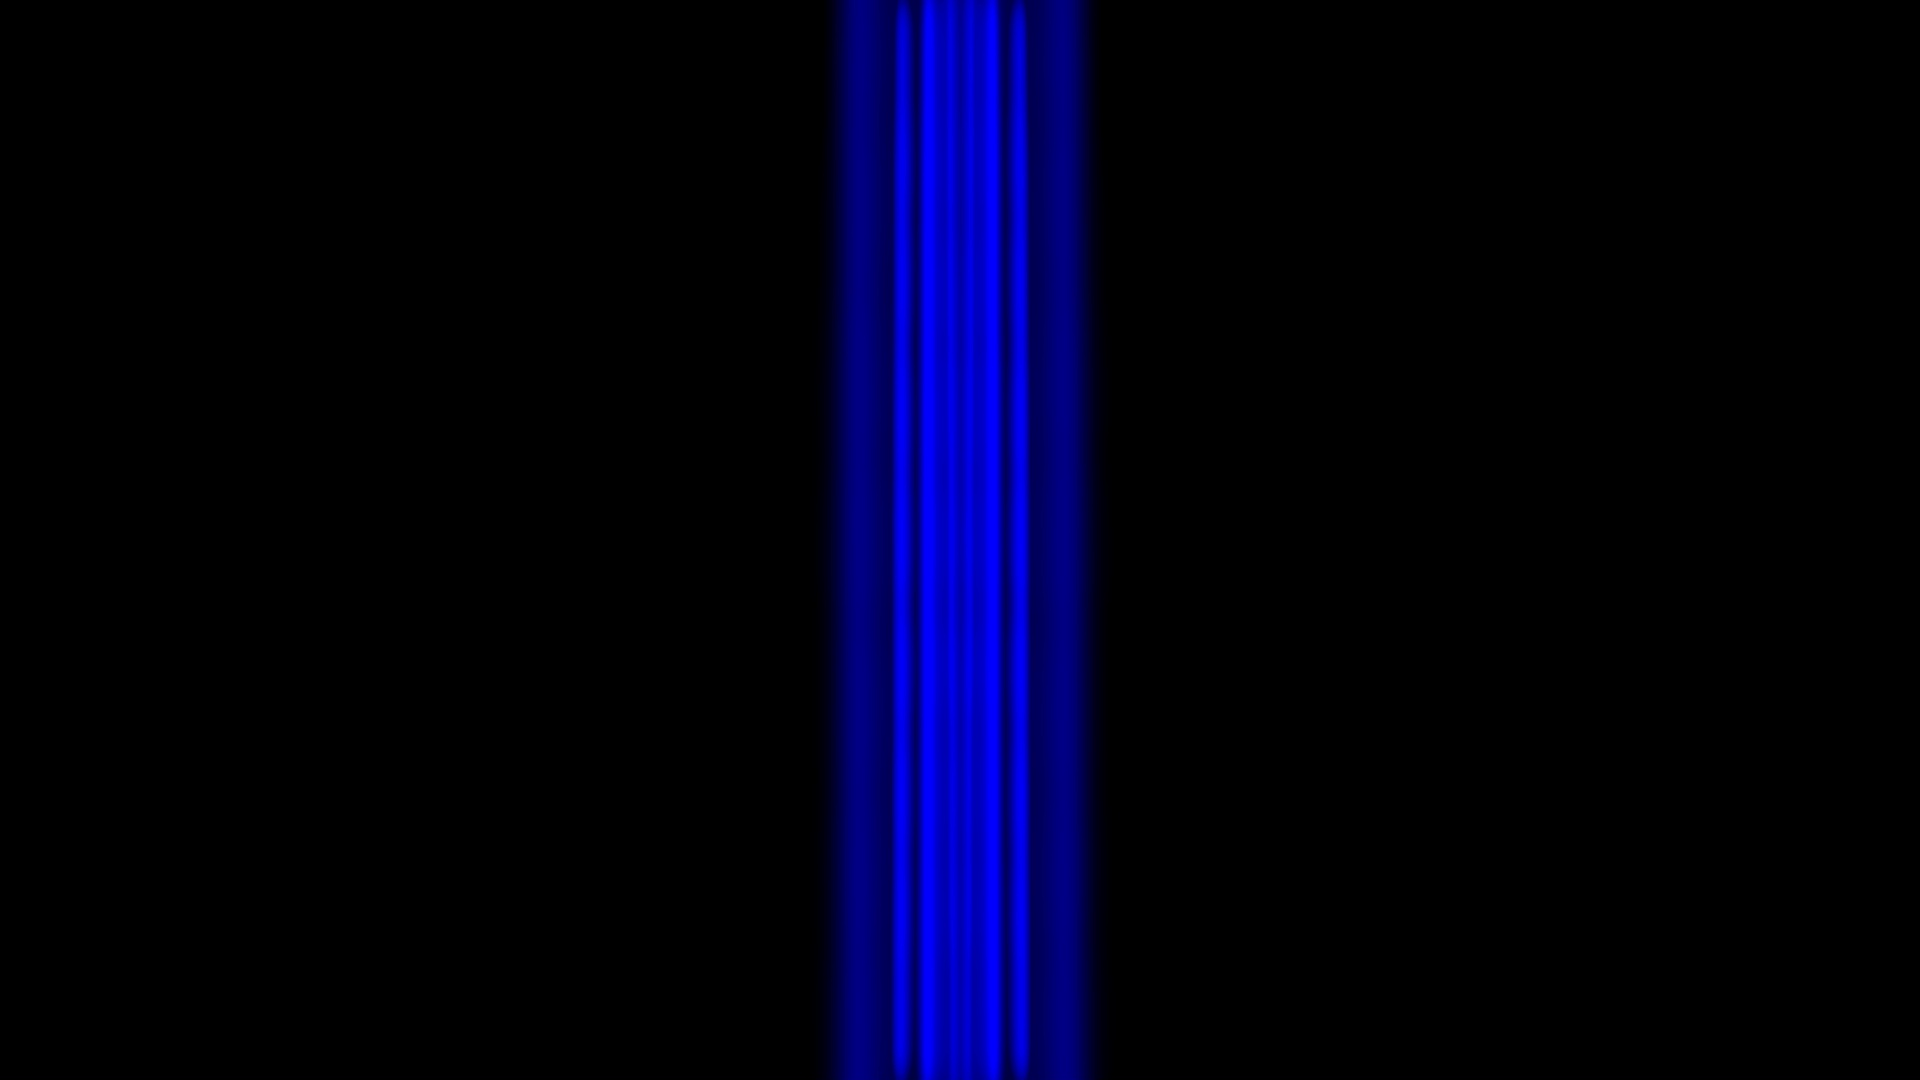 Sorrow- Blue Lines Centered 1